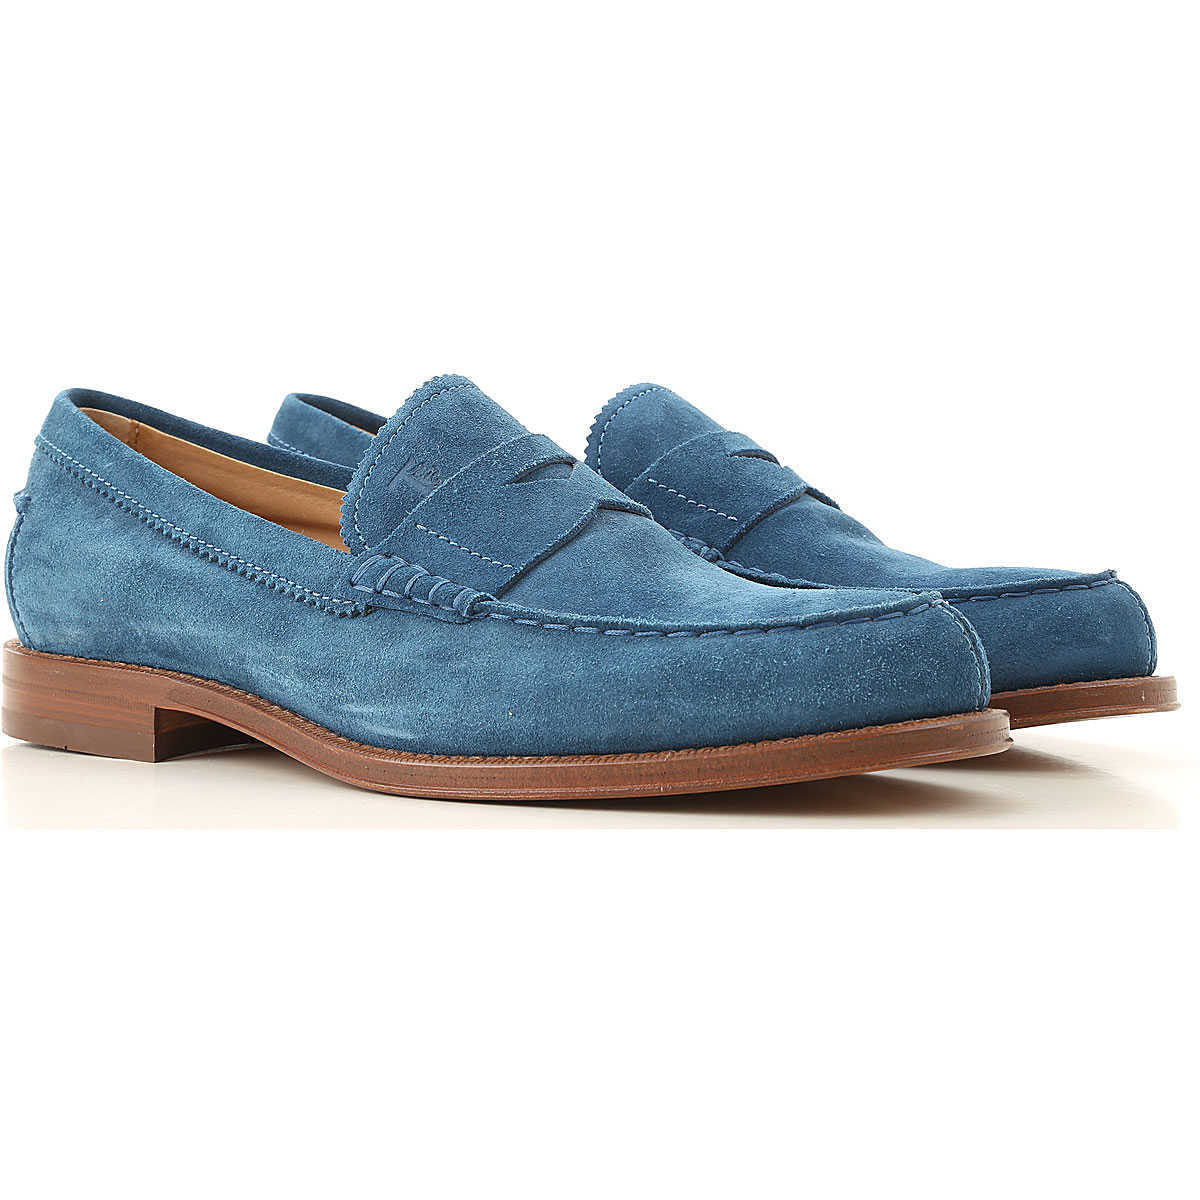 Tods Loafers for Men On Sale Cobalt Turquoise UK - GOOFASH